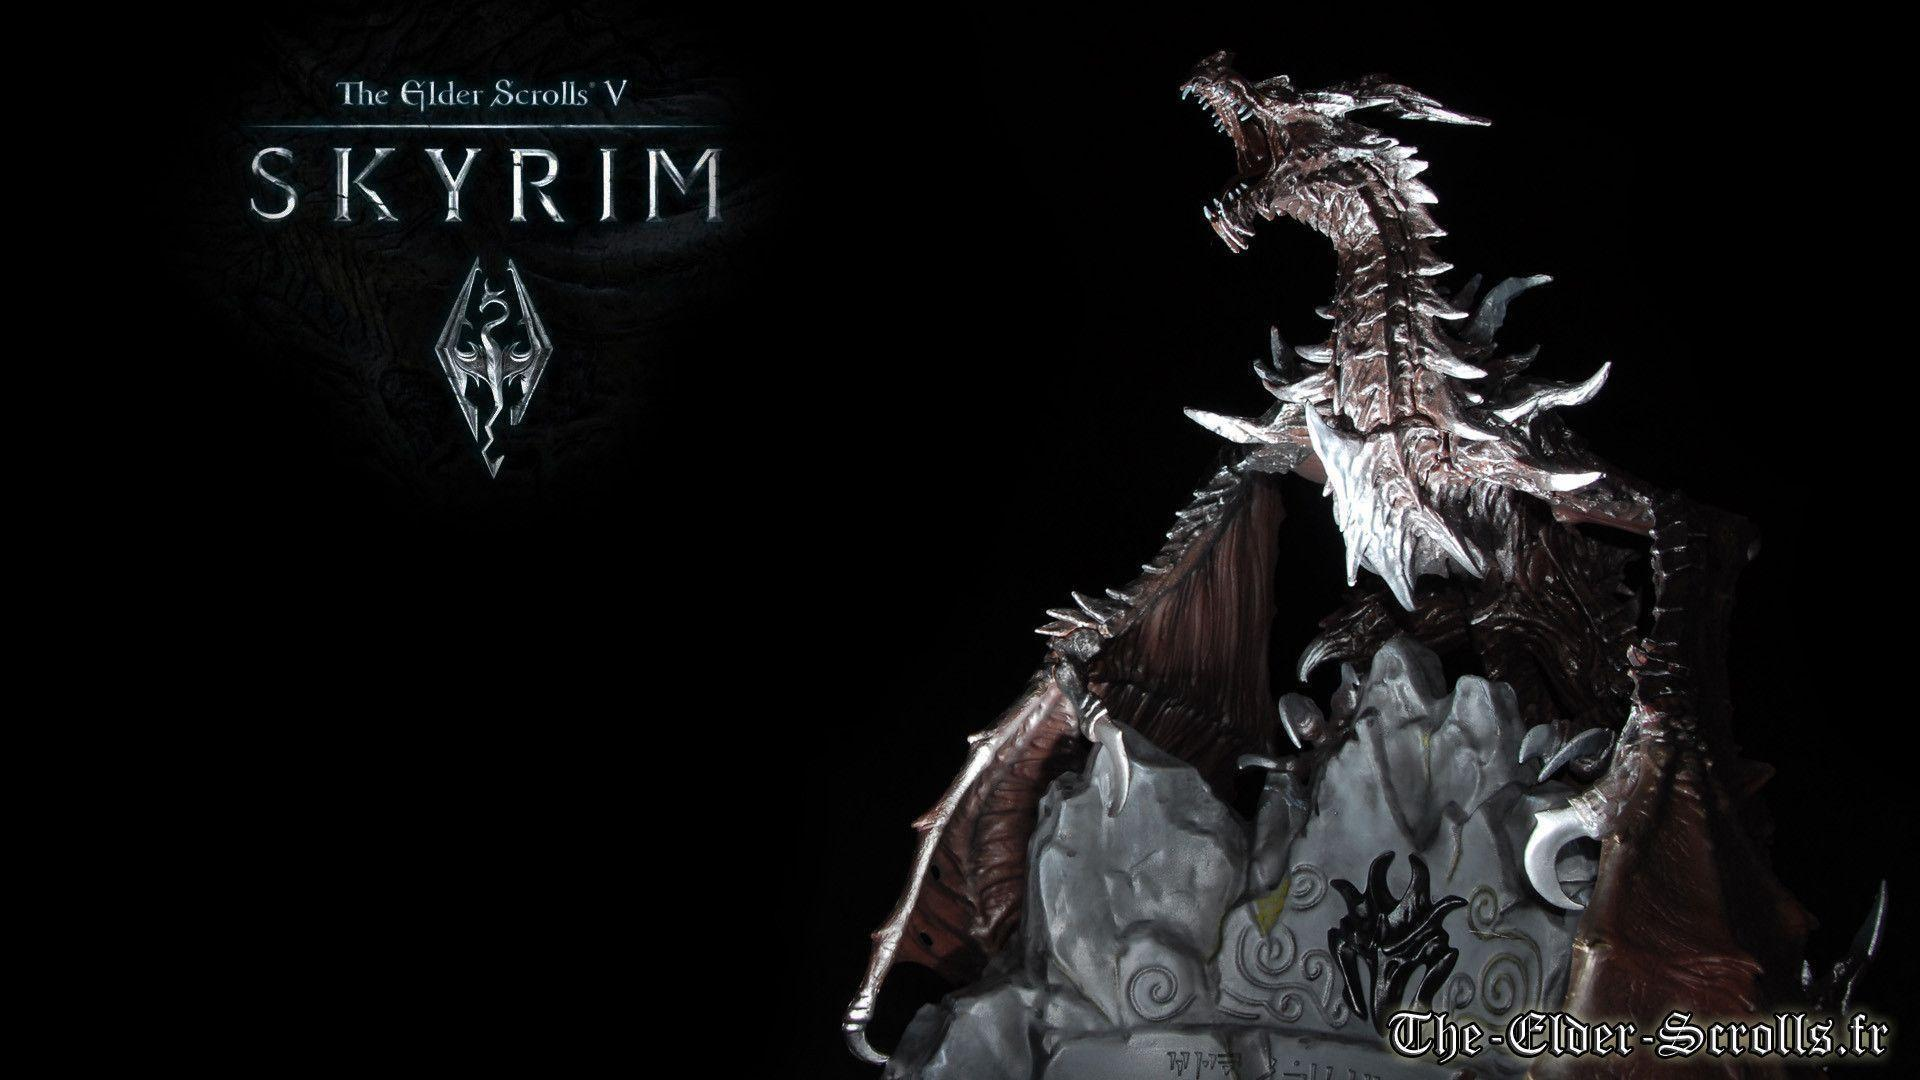 skyrim 1980 x 1040 wallpaper - photo #6